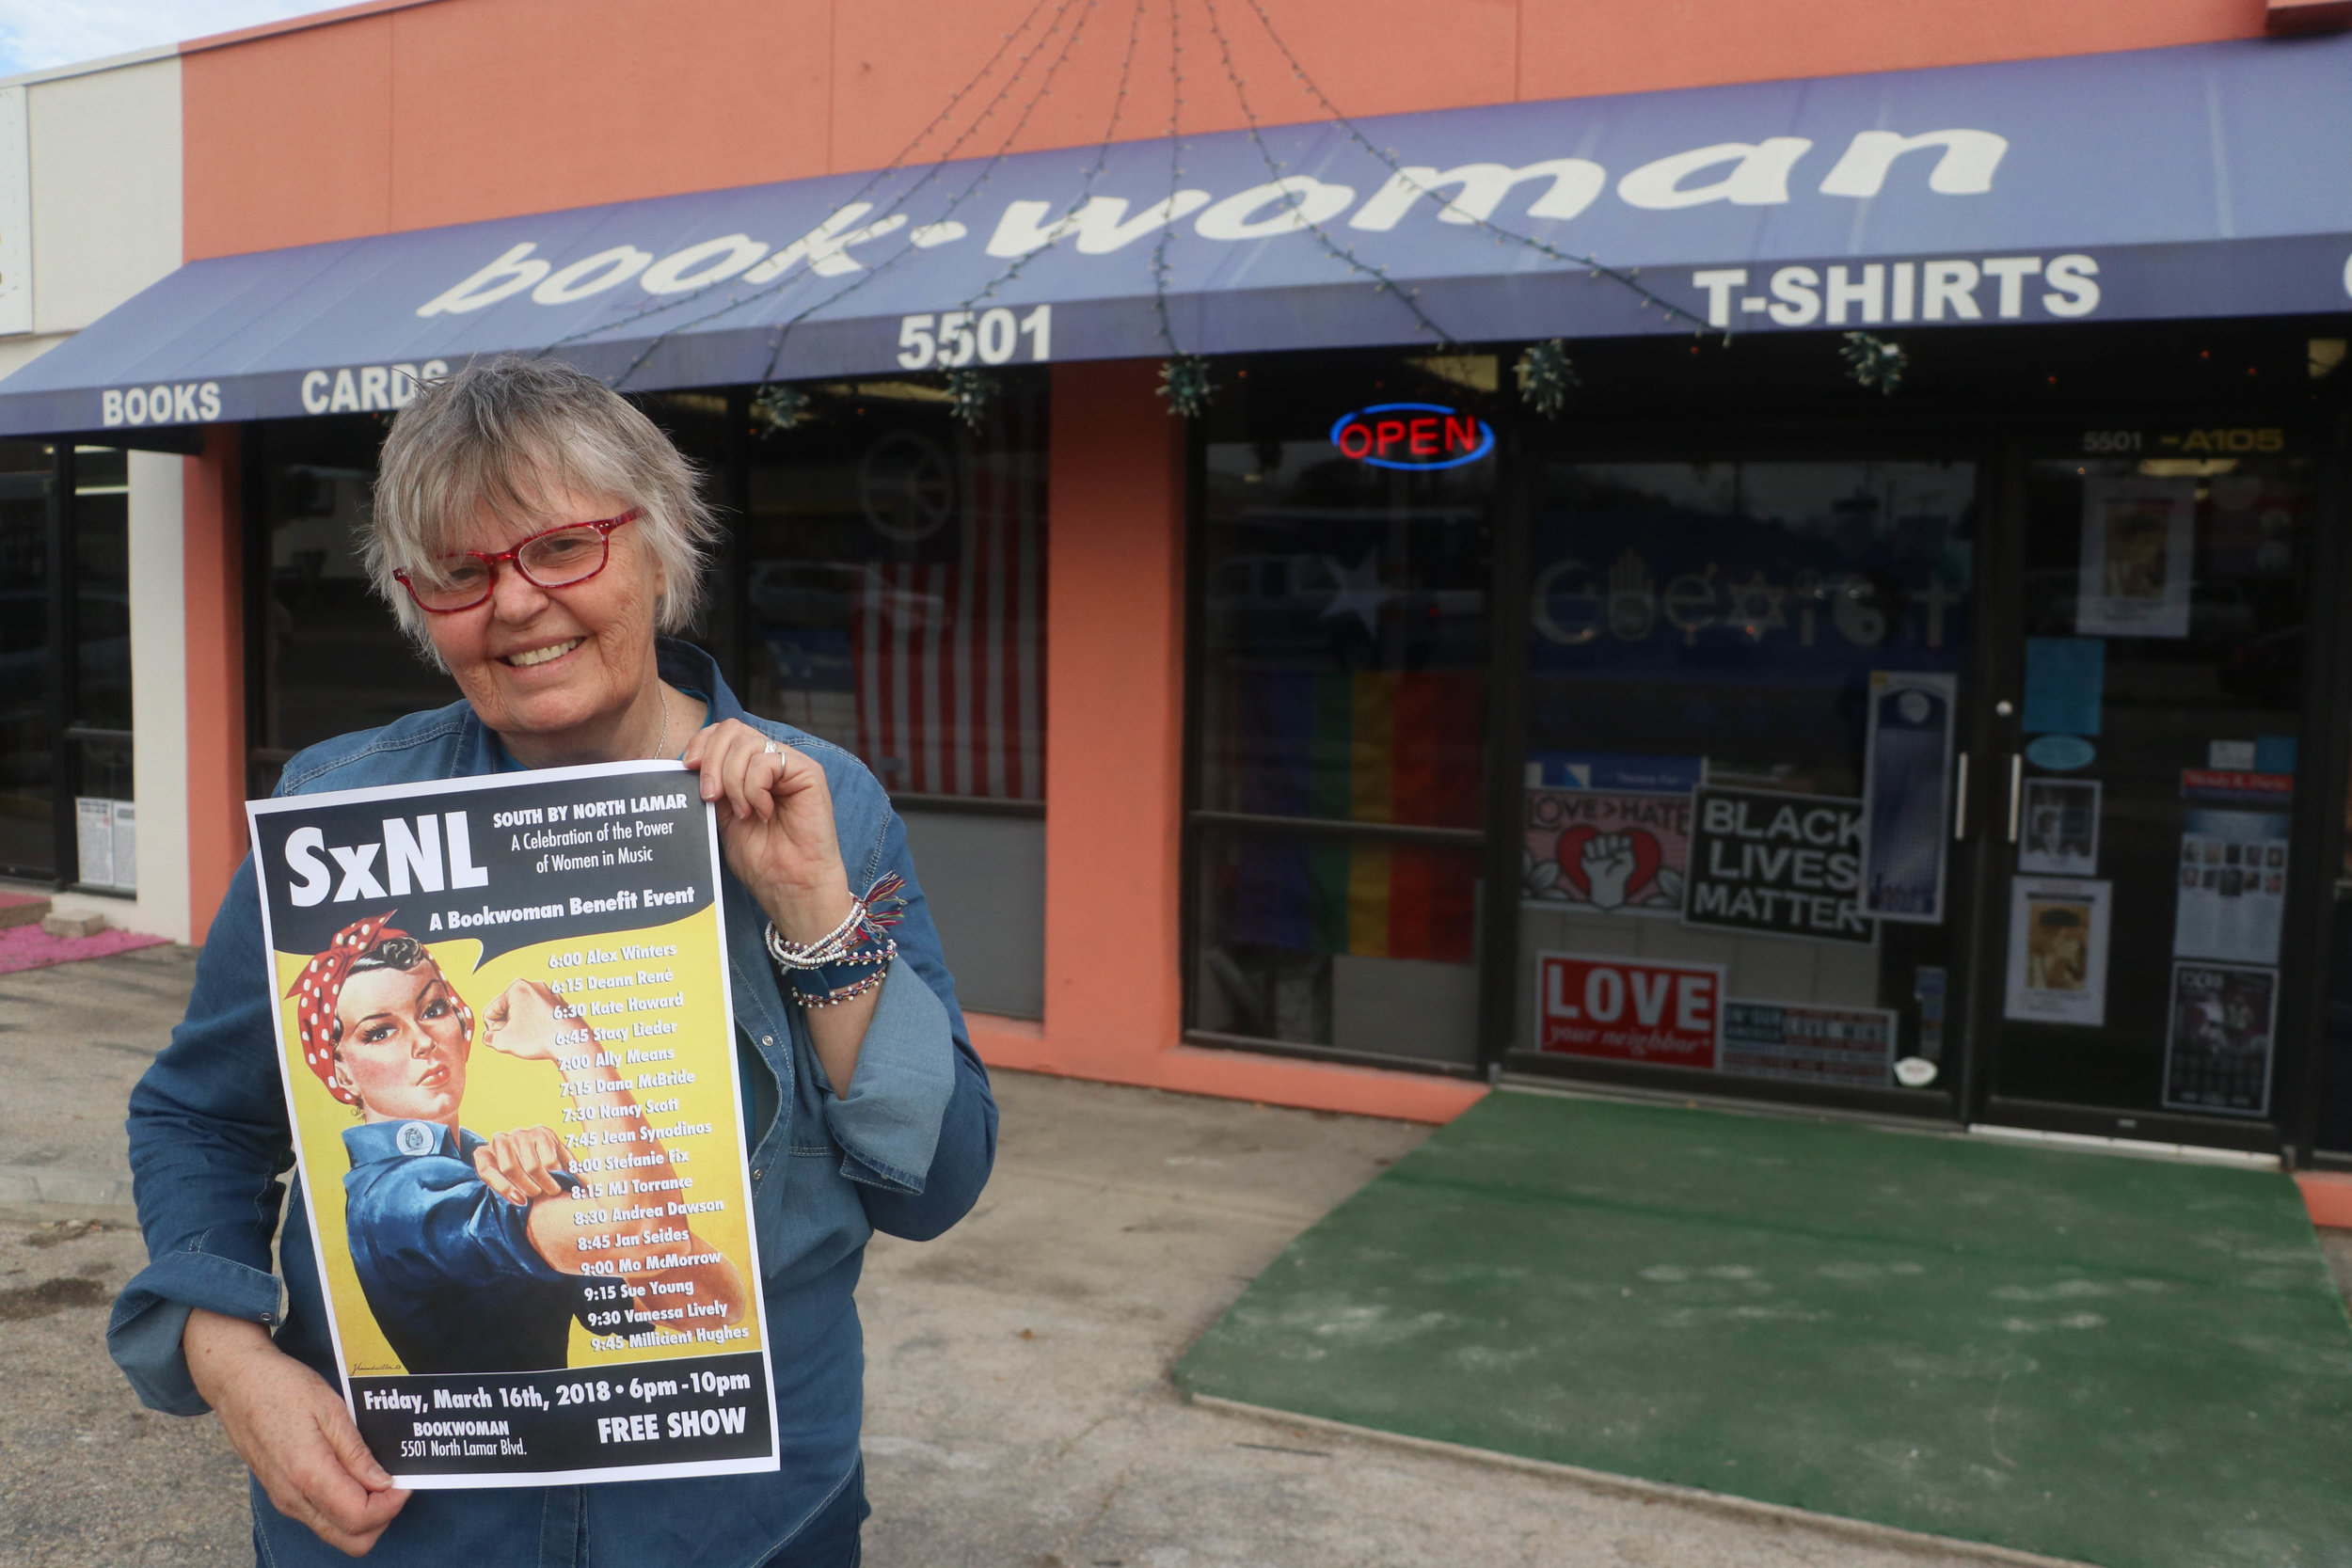 Susan Post, the owner of Bookwoman, displays her poster for South by North Lamar in front of her store.